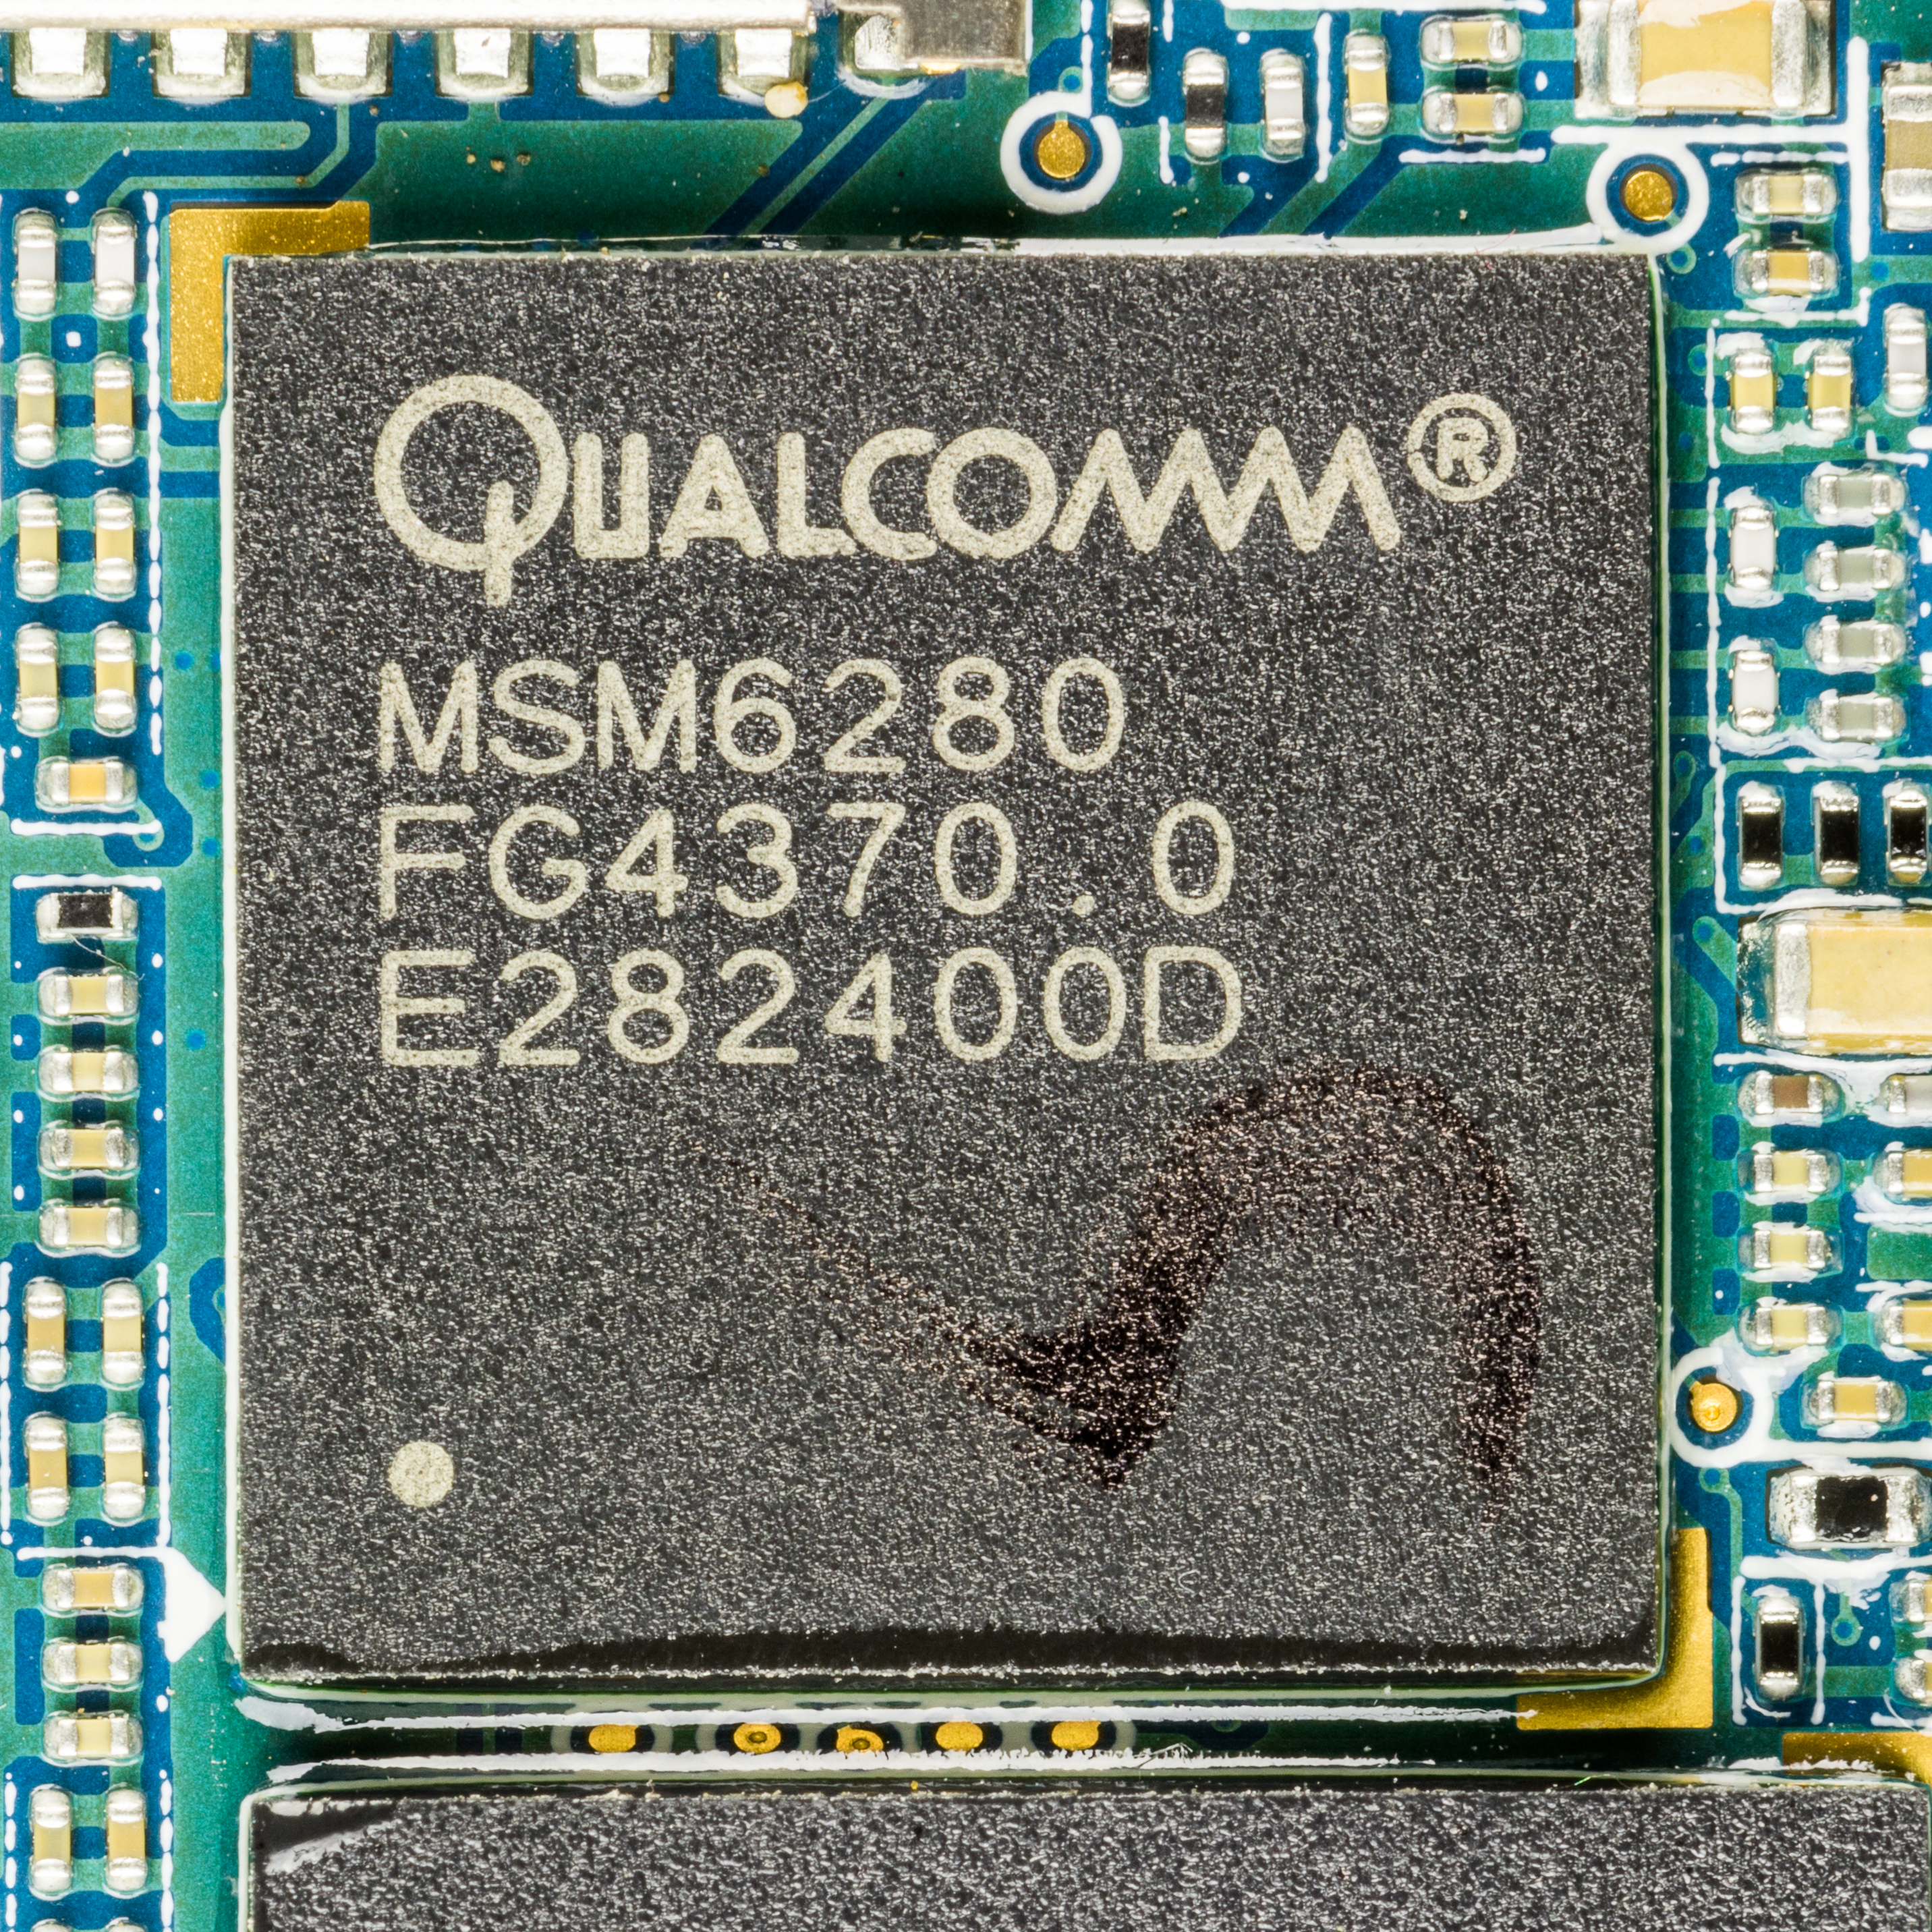 QUALCOMM MSM6280 TELECHARGER PILOTE